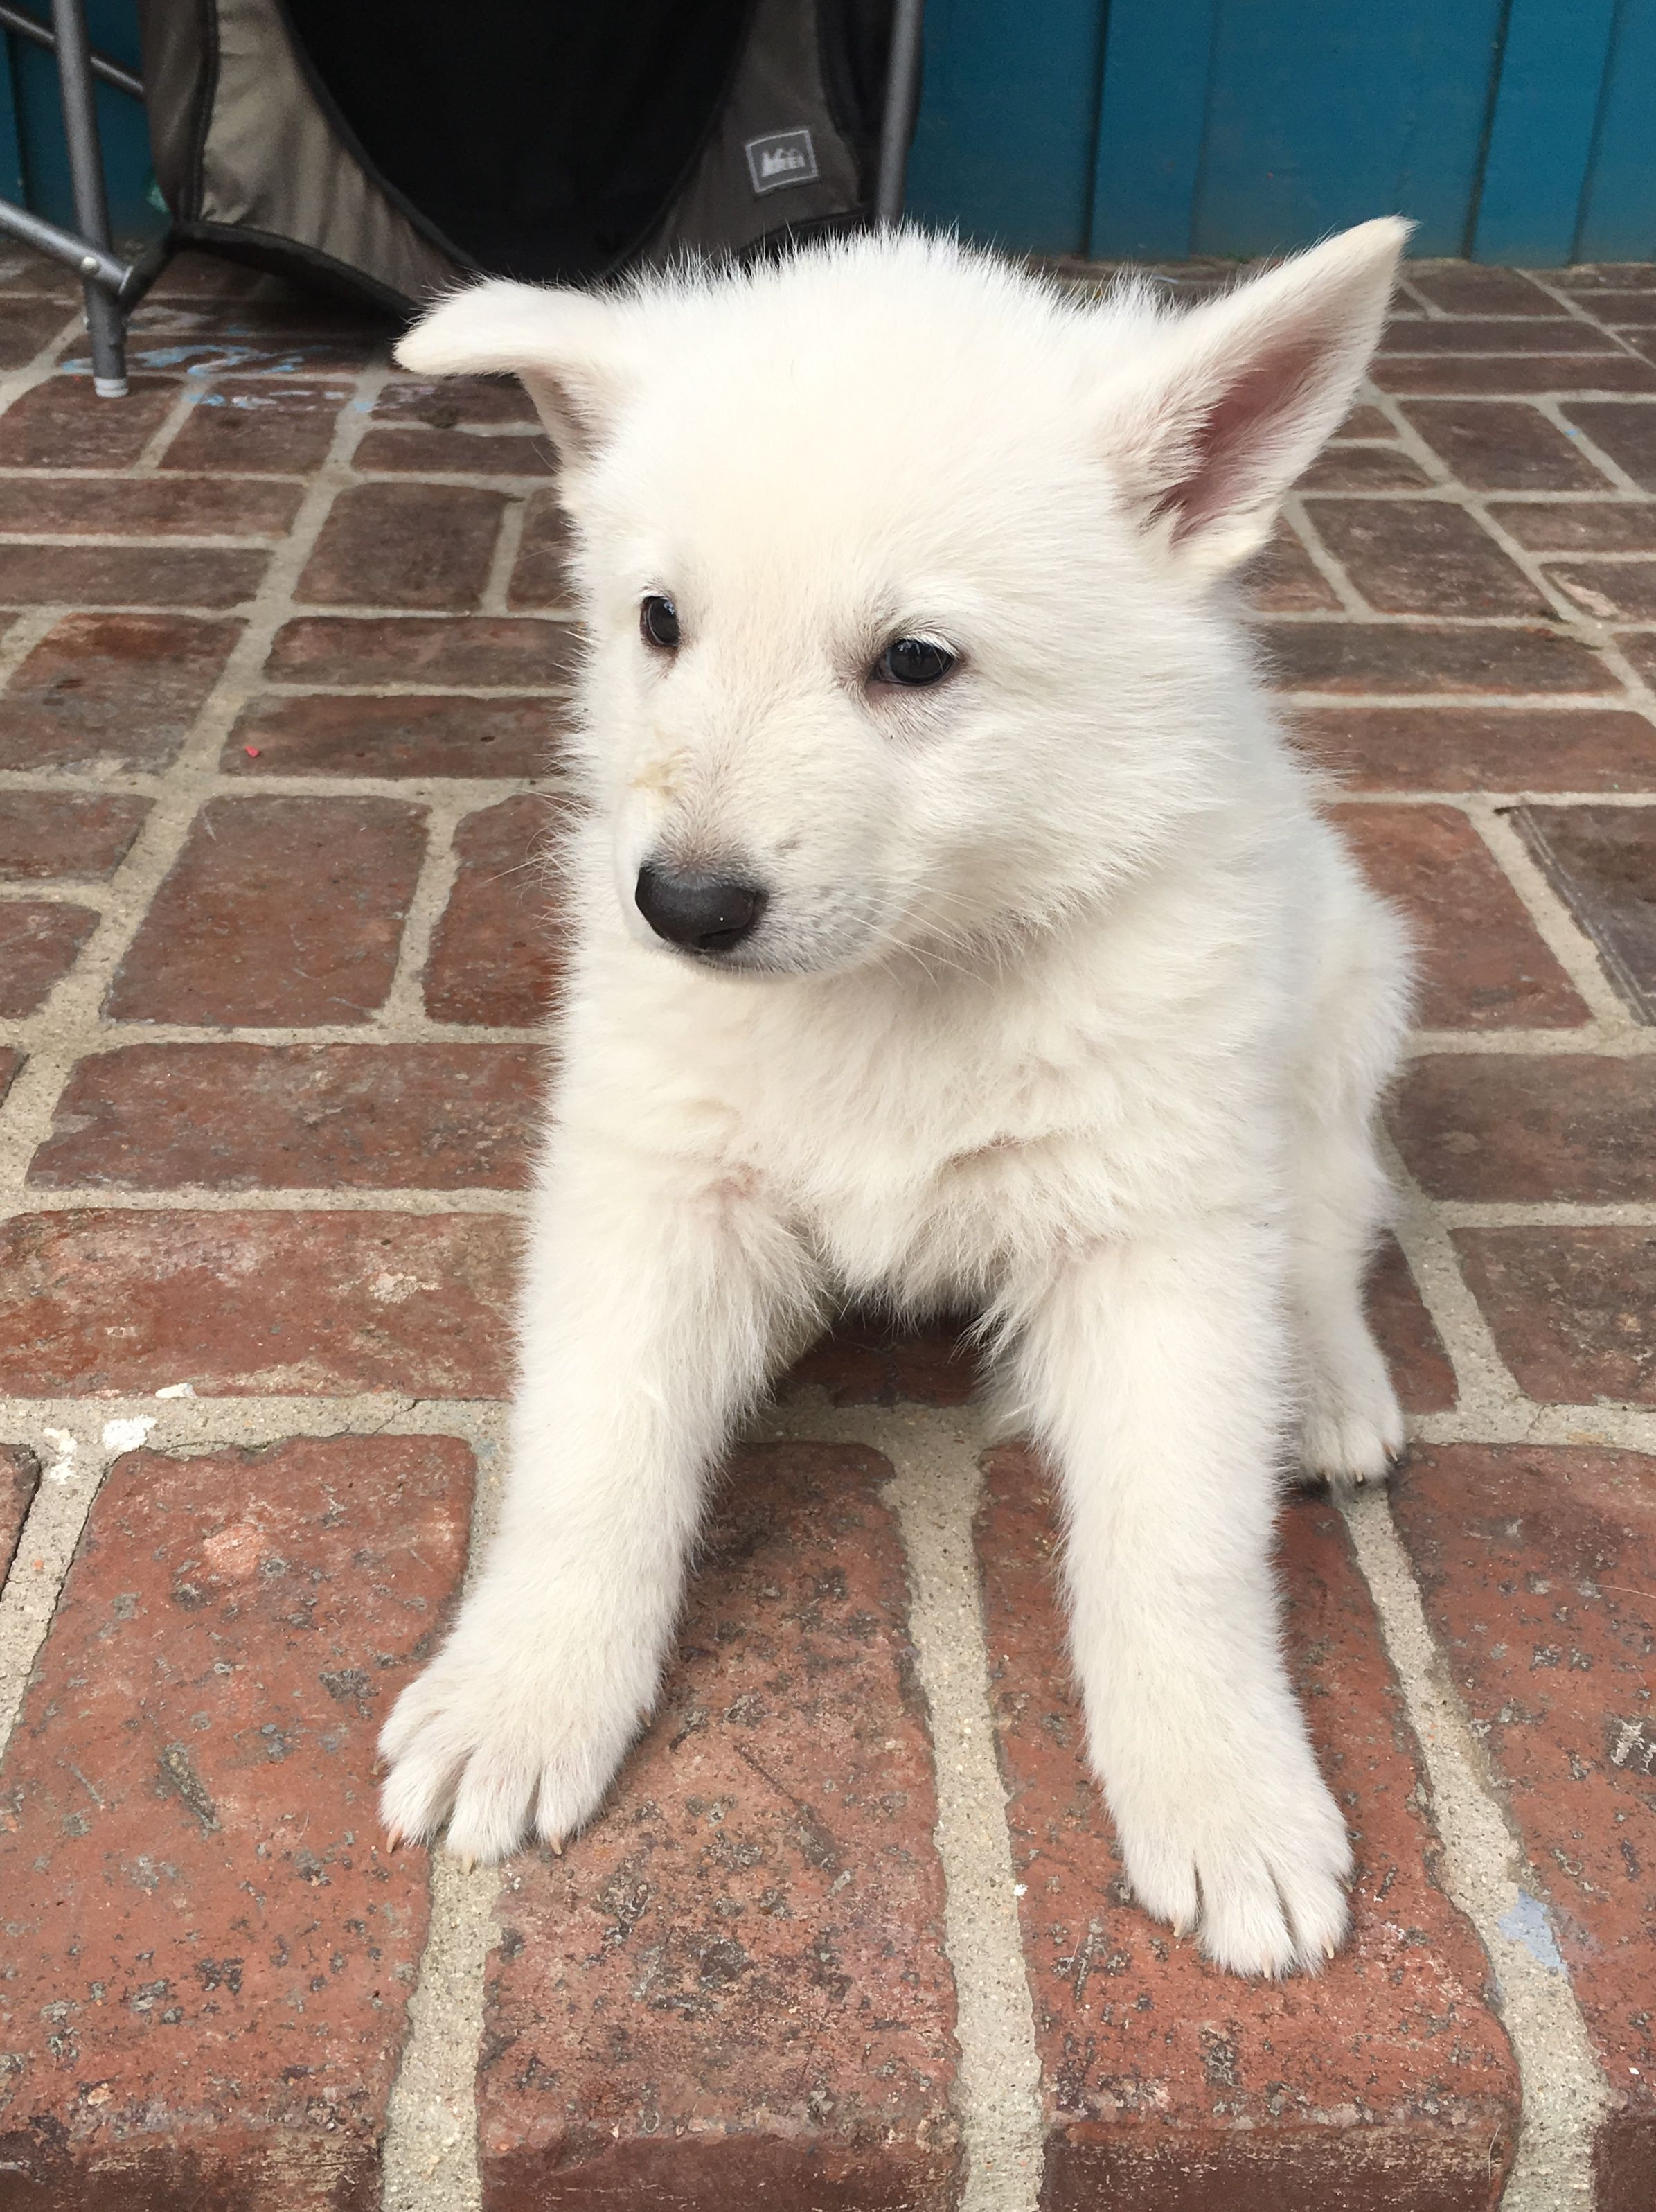 Tan Boy A Male Ukc White Shepherd Puppy For Sale In Fullerton